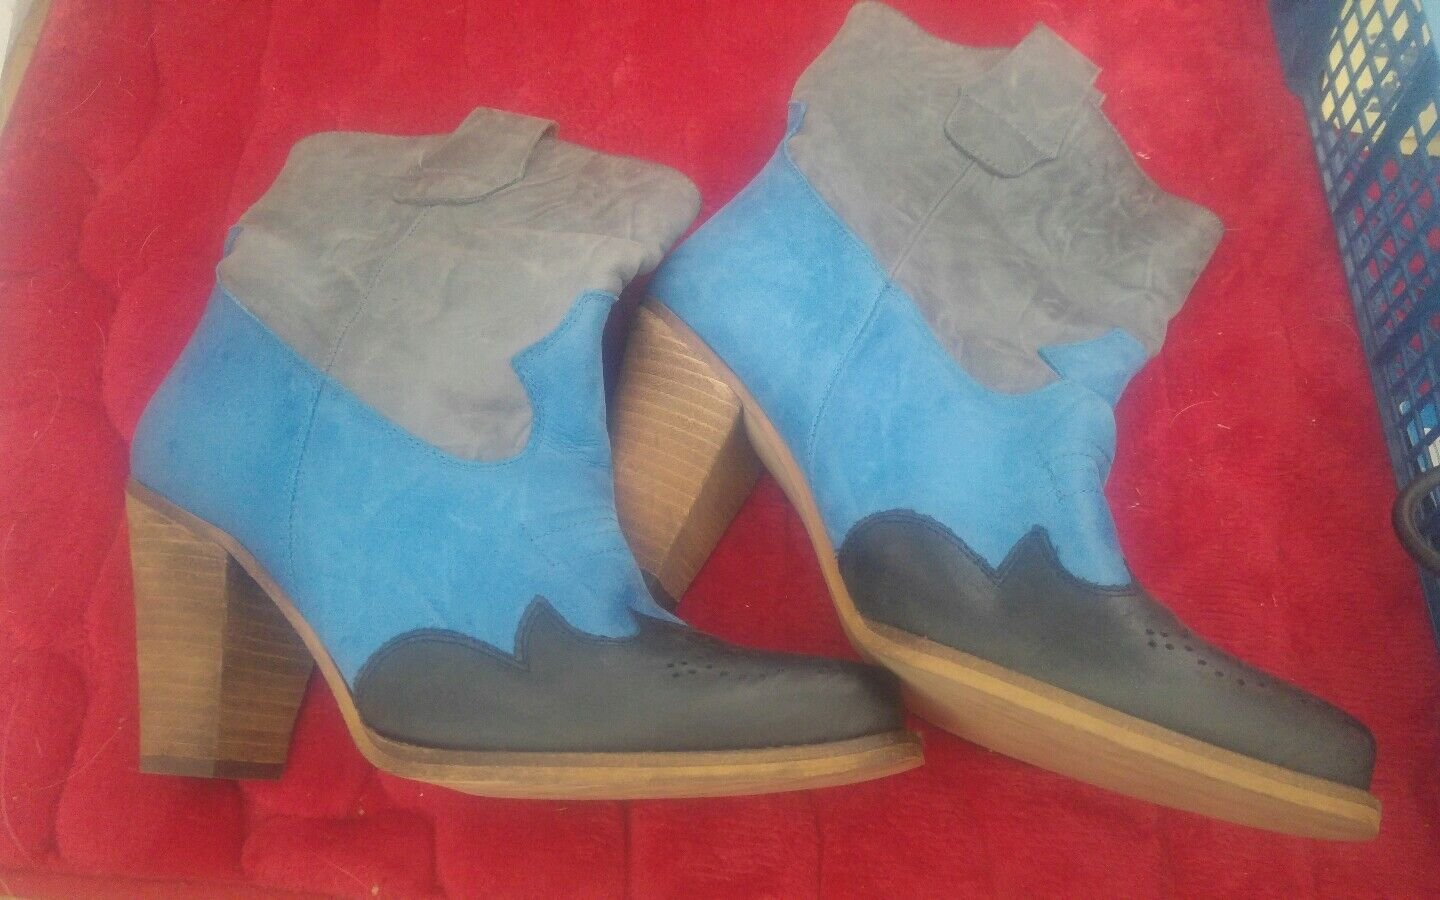 SCHUH SPANISH LEATHER LADIES ANKLE BOOTS 6.5 ONLY WORN TO TRY ON BLACK blueE GREY